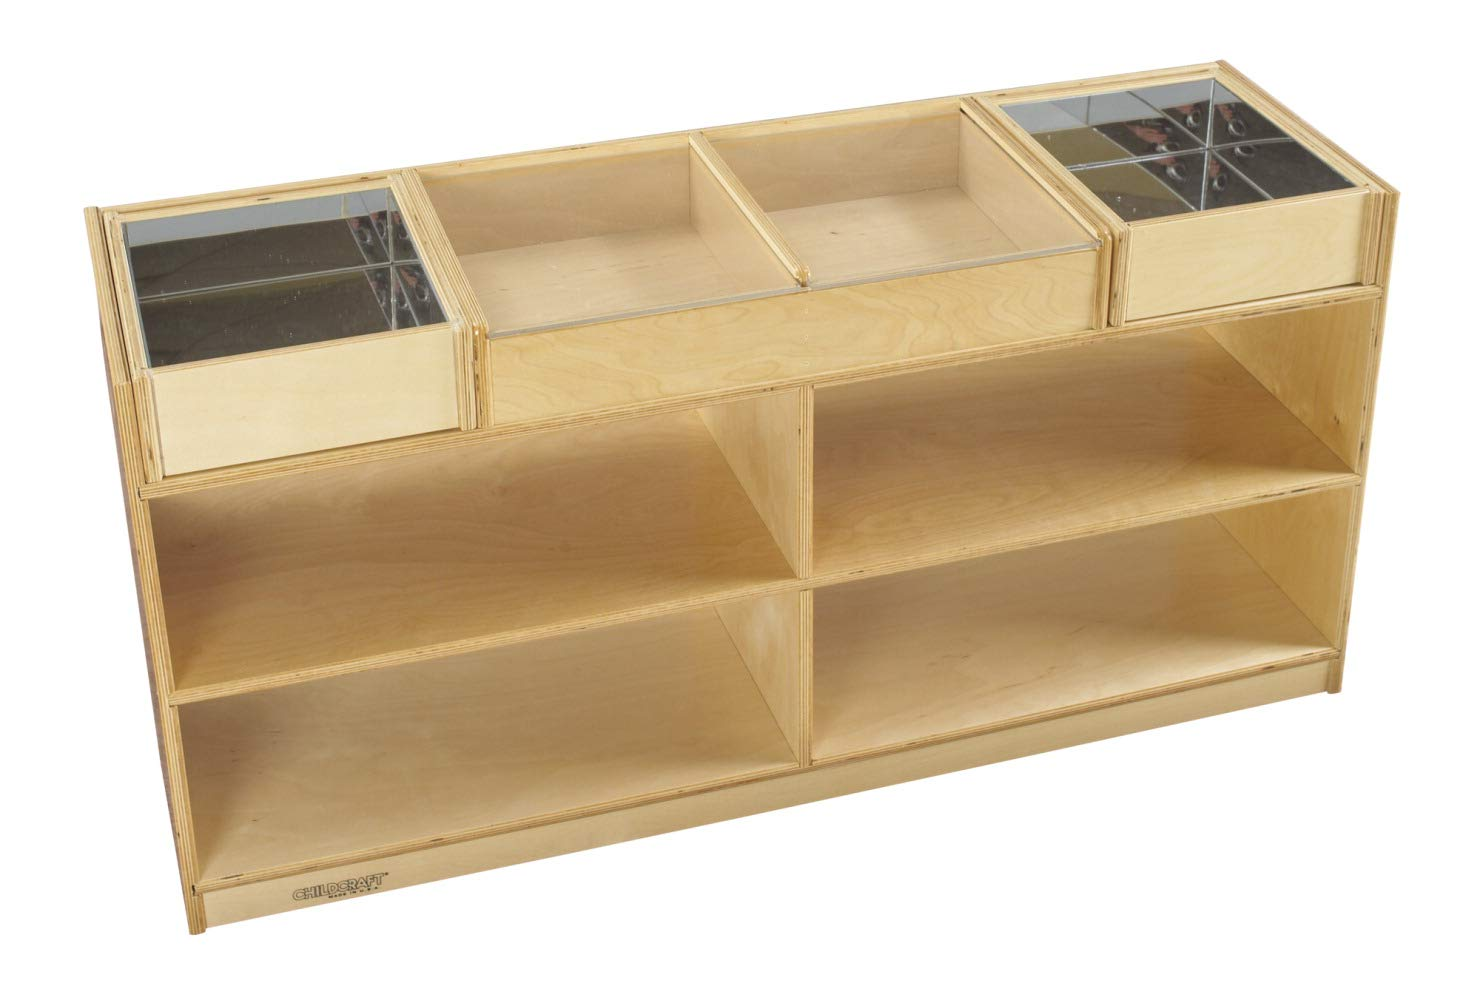 Childcraft Mobile Science Exploration Station, 47-3/4 x 14-1/4 x 24 Inches